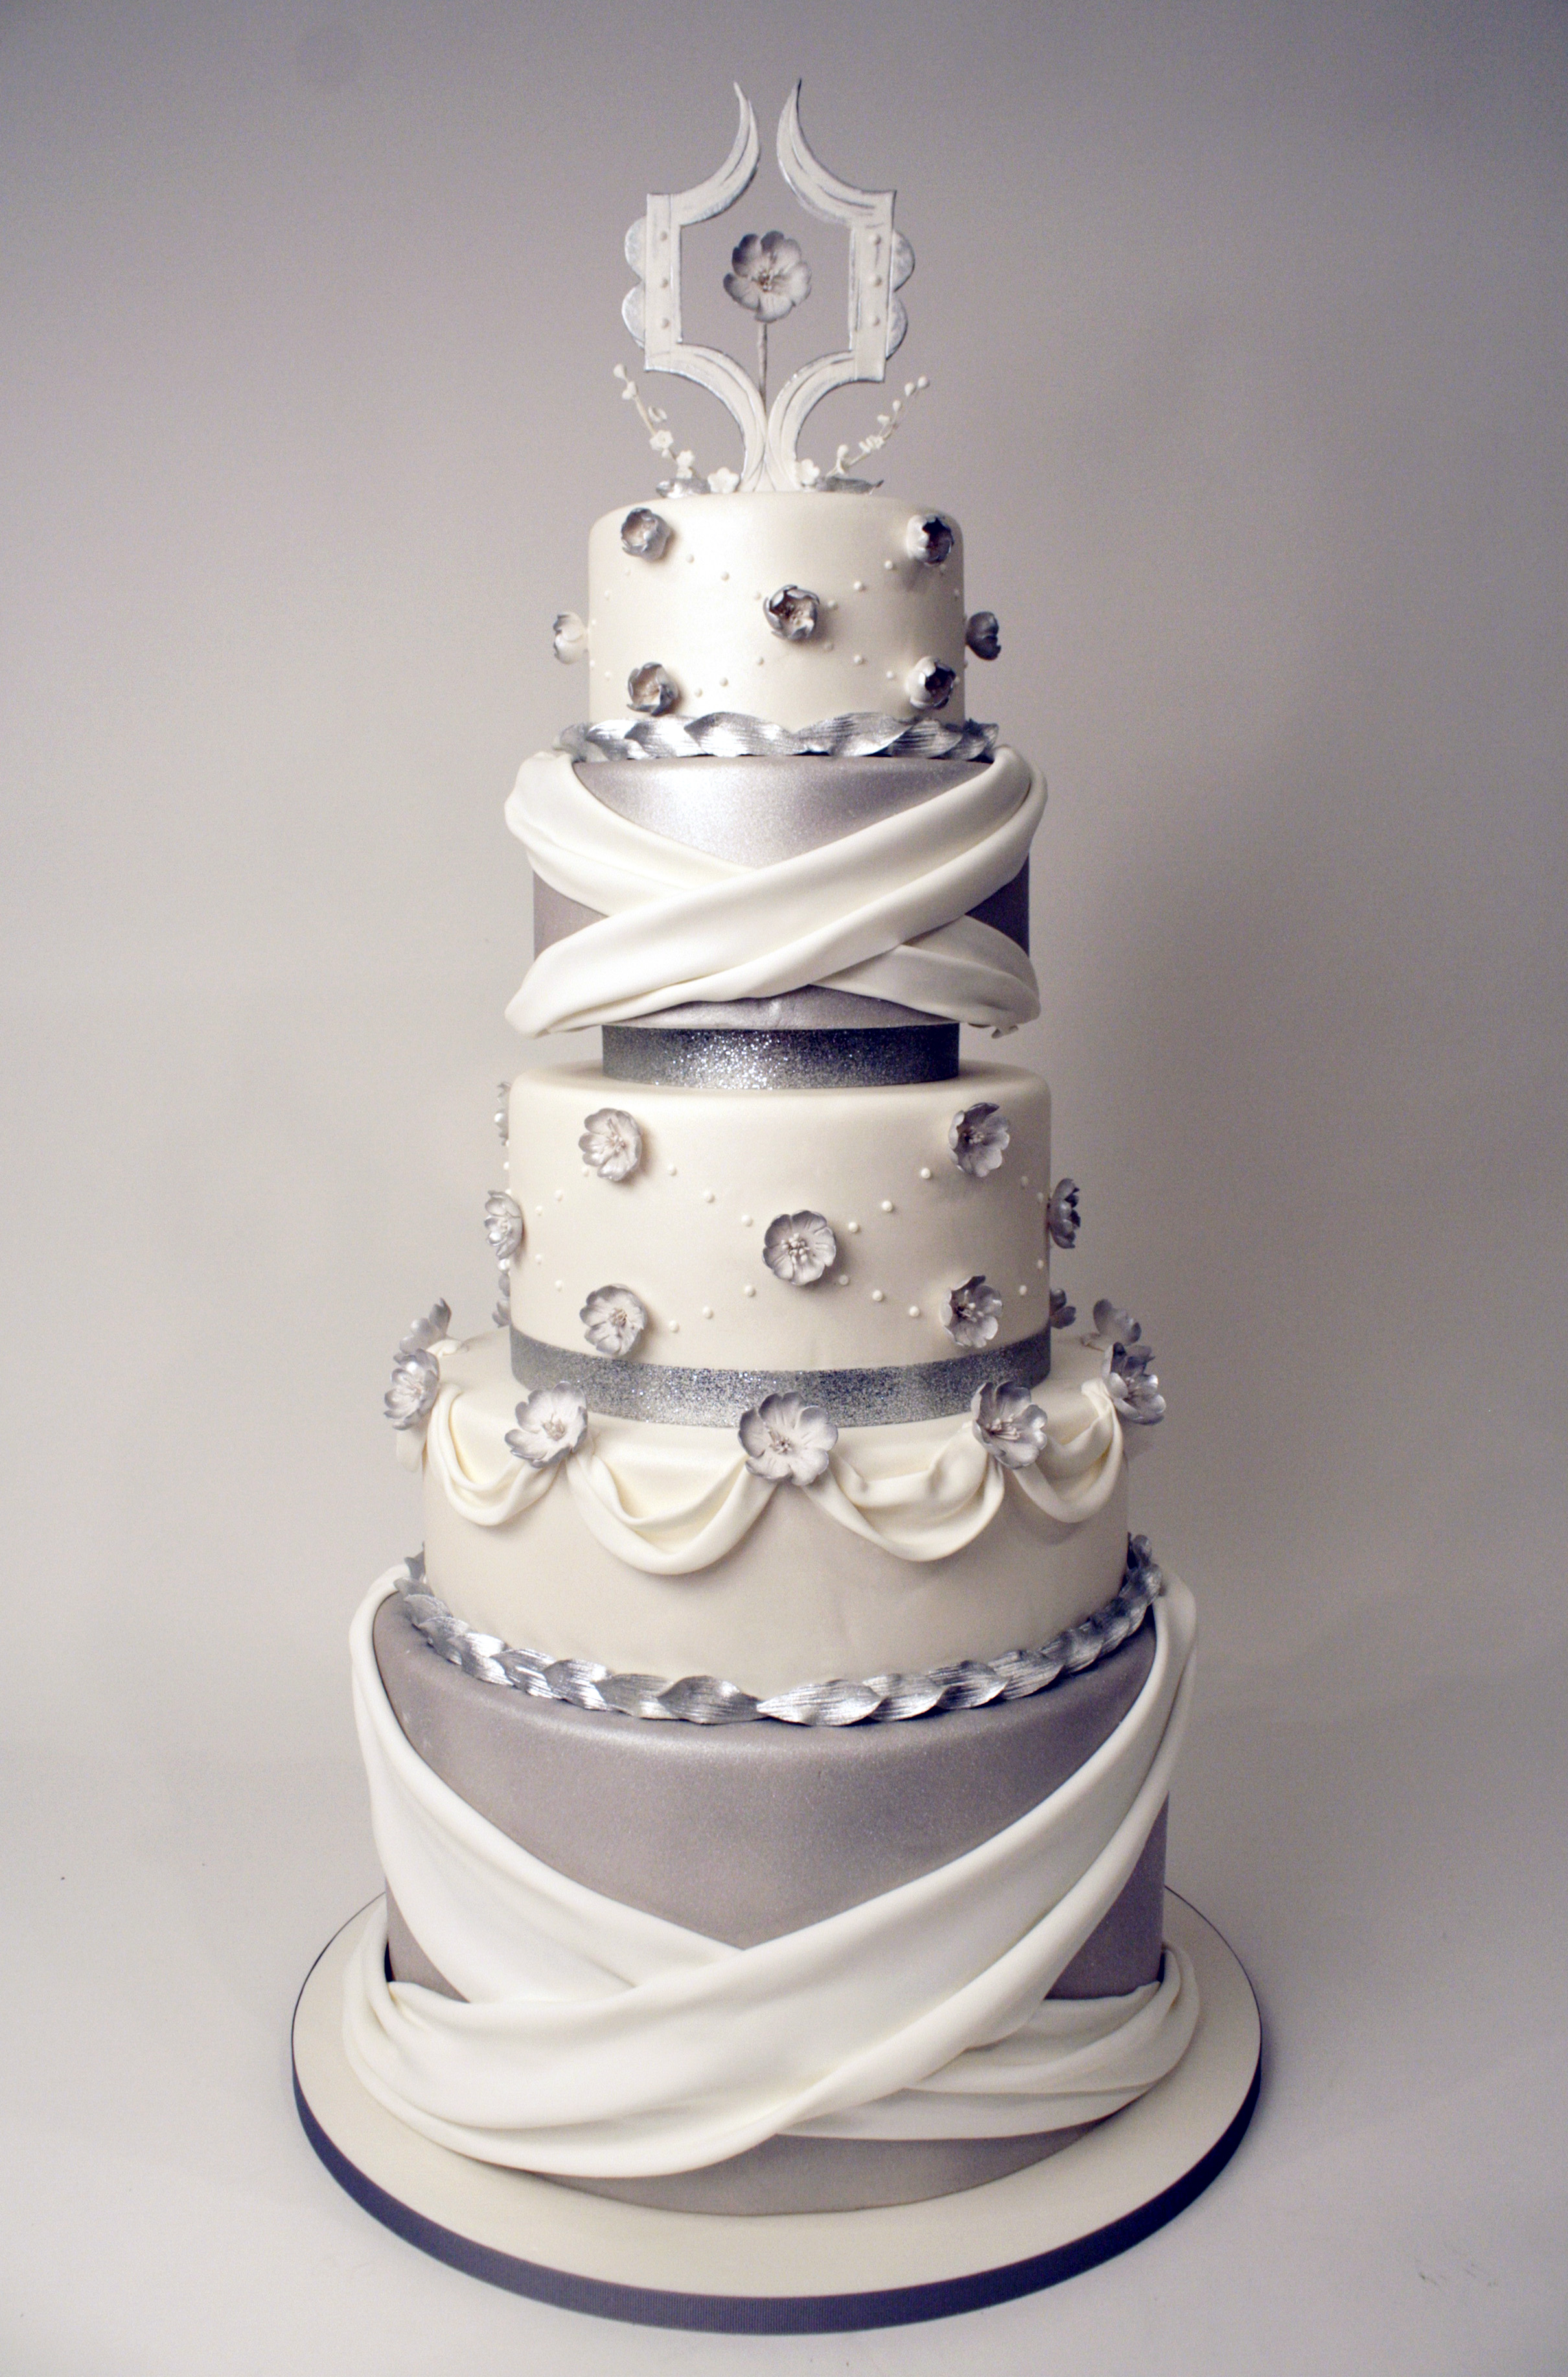 Cake Art Md : Baltimore Wedding Venues and Vendors PartySpace